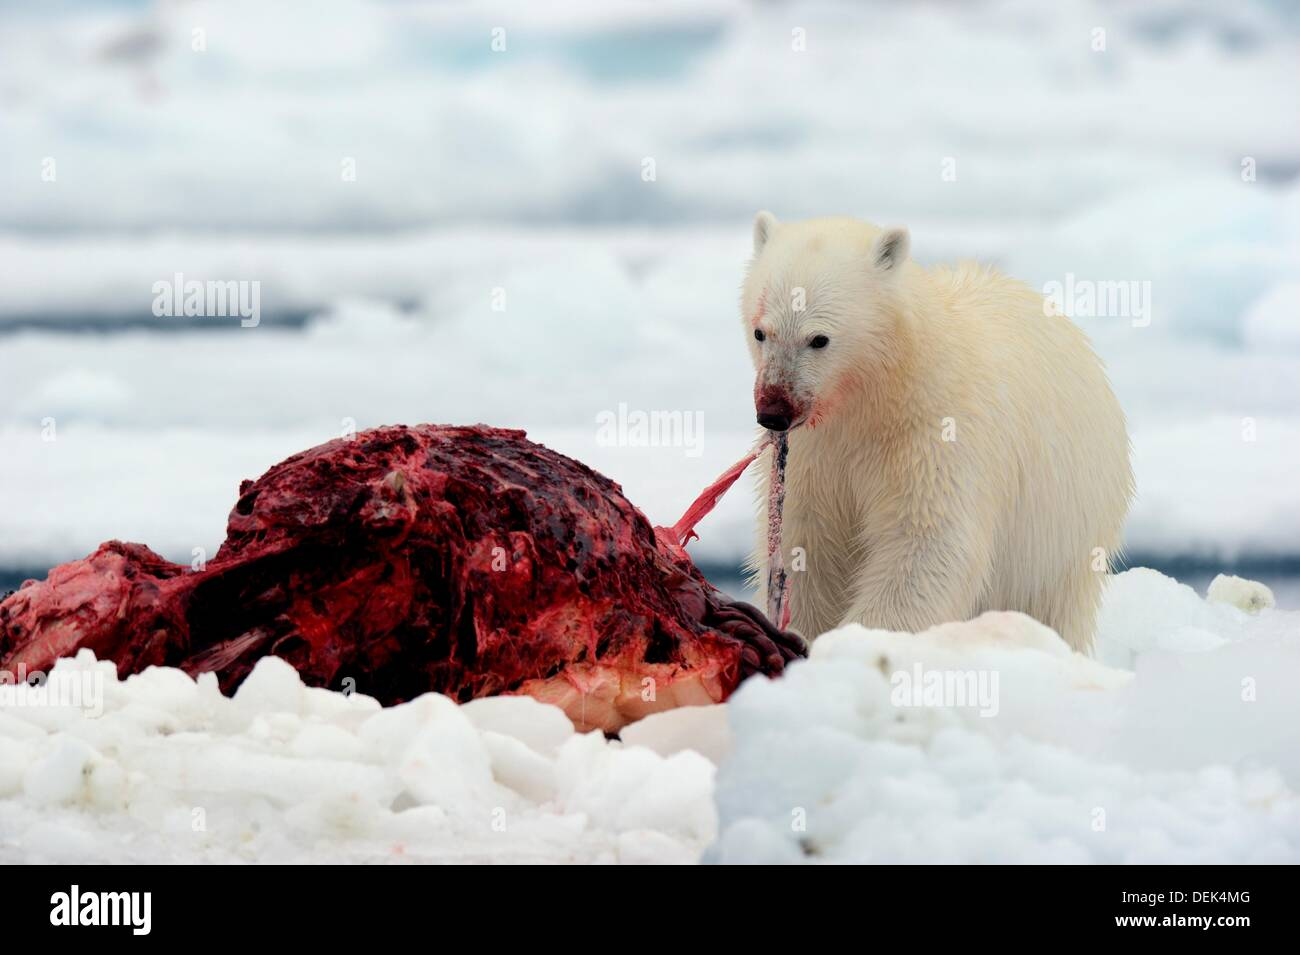 narwhal arctic stock photos u0026 narwhal arctic stock images alamy